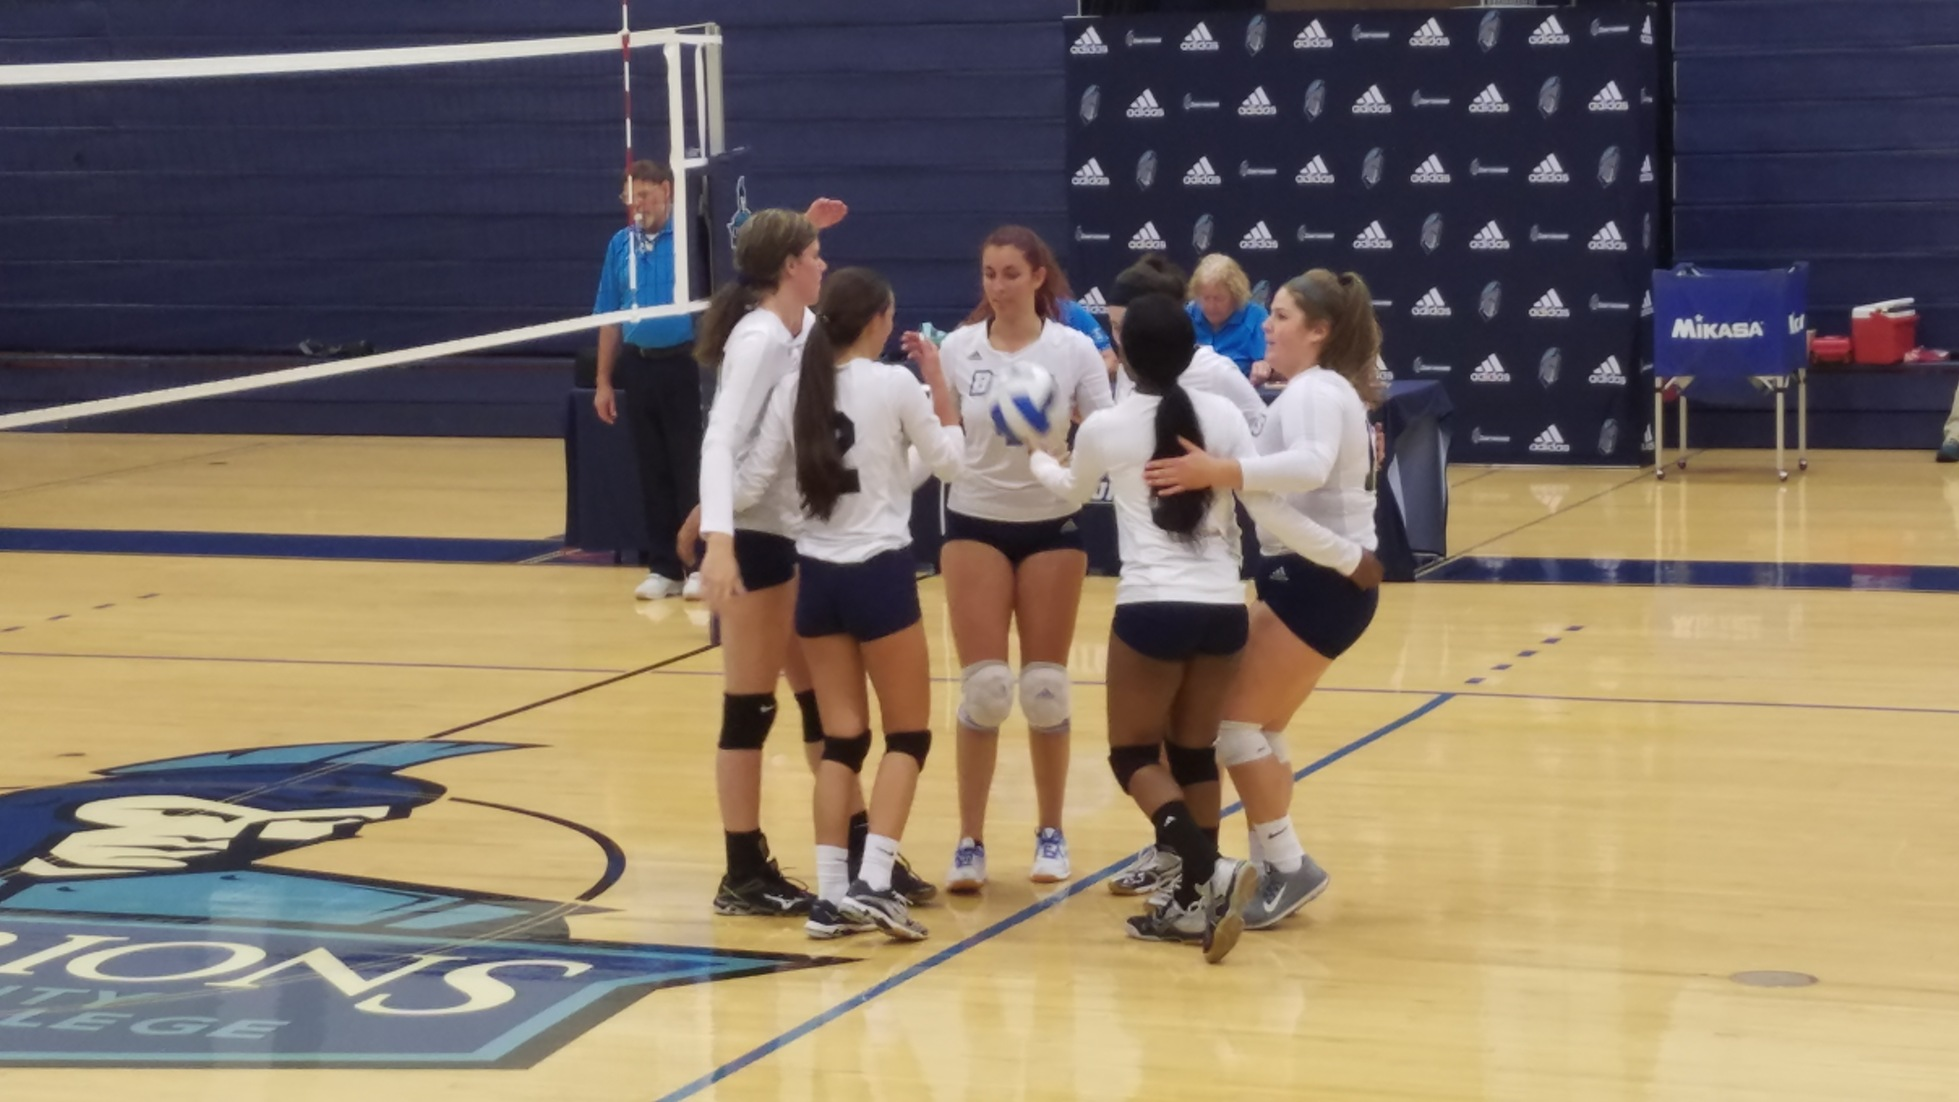 Women's Volleyball: Big improvement in game 2